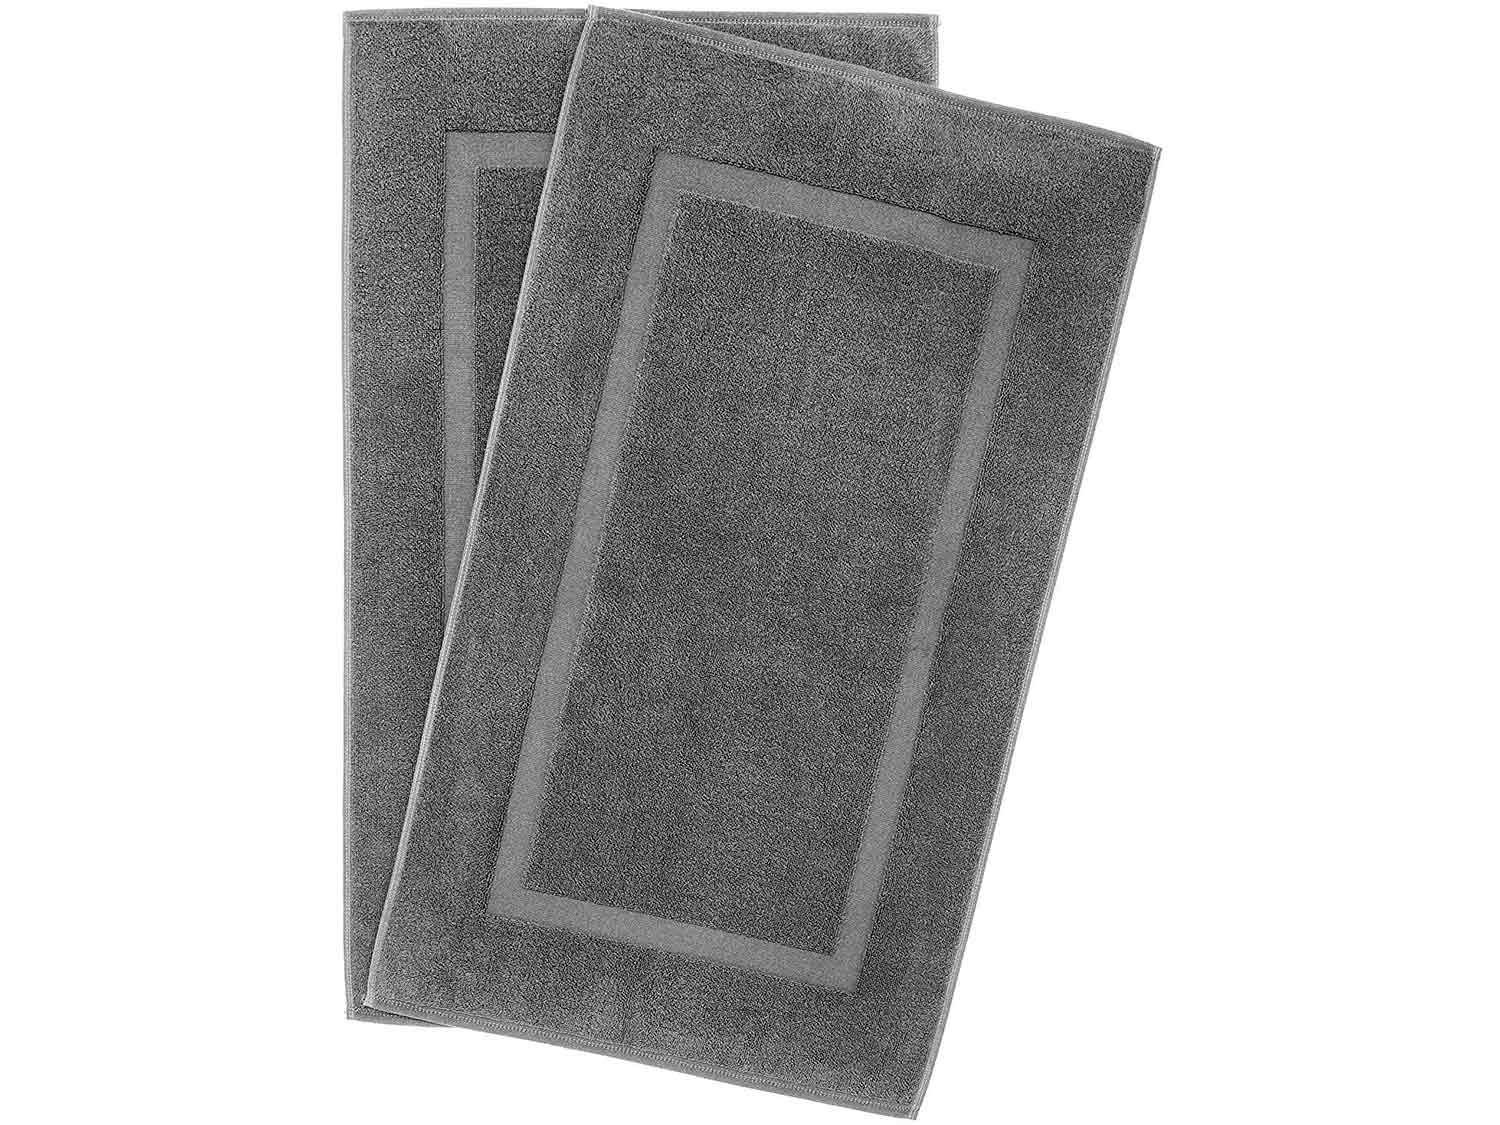 900 GSM Machine Washable 20x34 Inches 2-Pack Banded Bath Mats, Luxury Hotel & Spa Quality, 100% Ring Spun Genuine Cotton, Maximum Softness & Absorbency by United Home Textile, Charcoal Grey